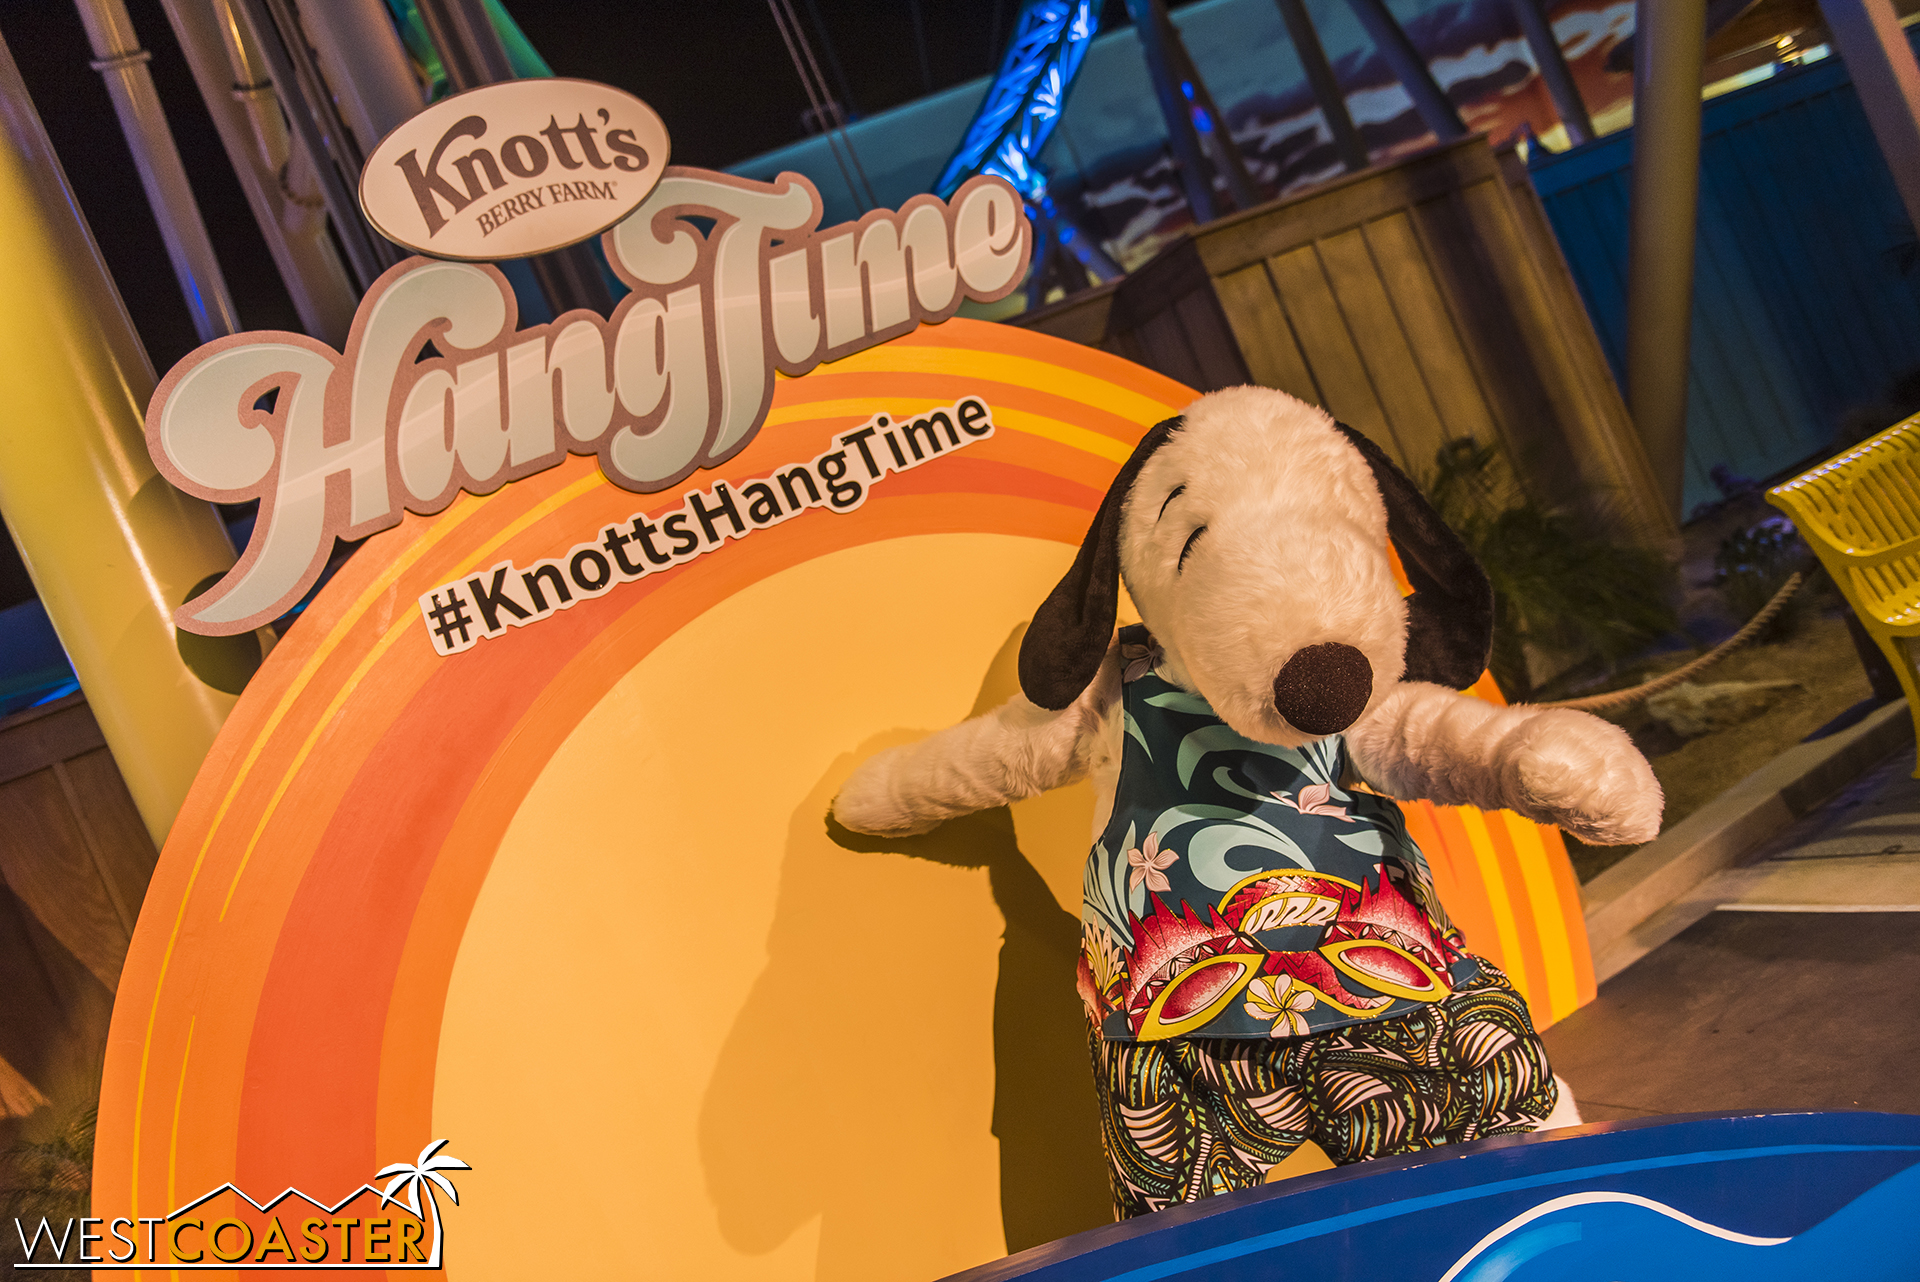 Throughout the night, Snoopy would show up for photo ops.